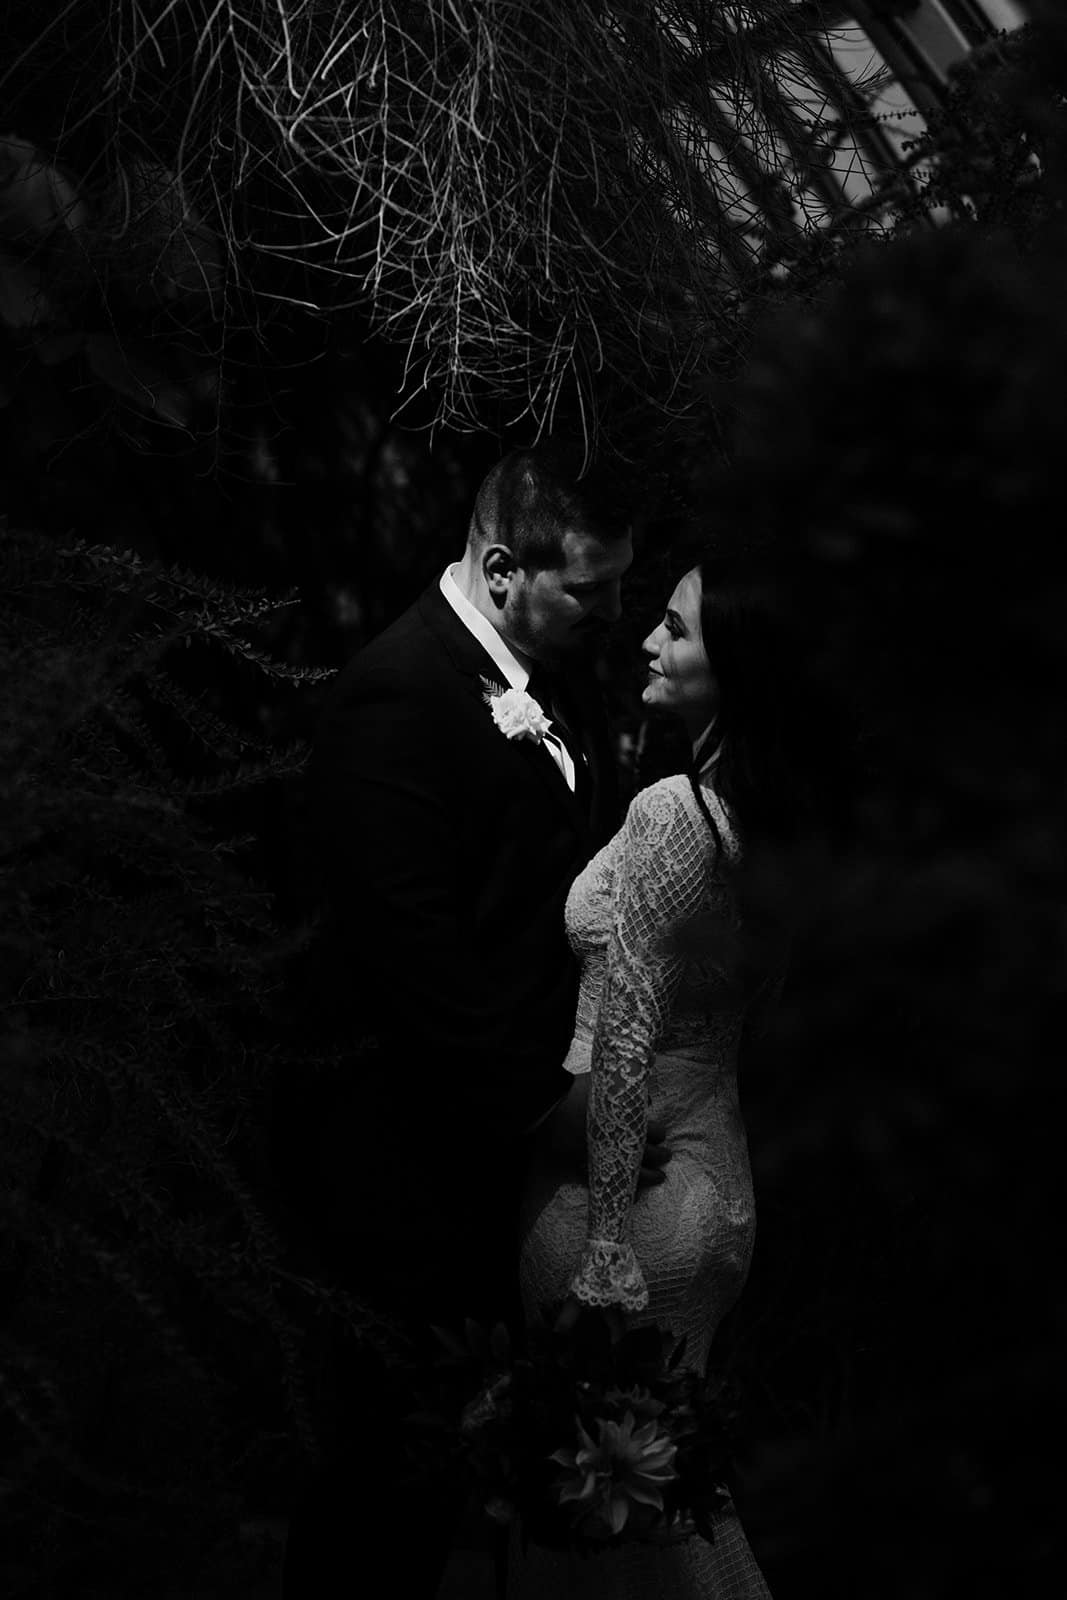 dark and moody photograph of husband and wife